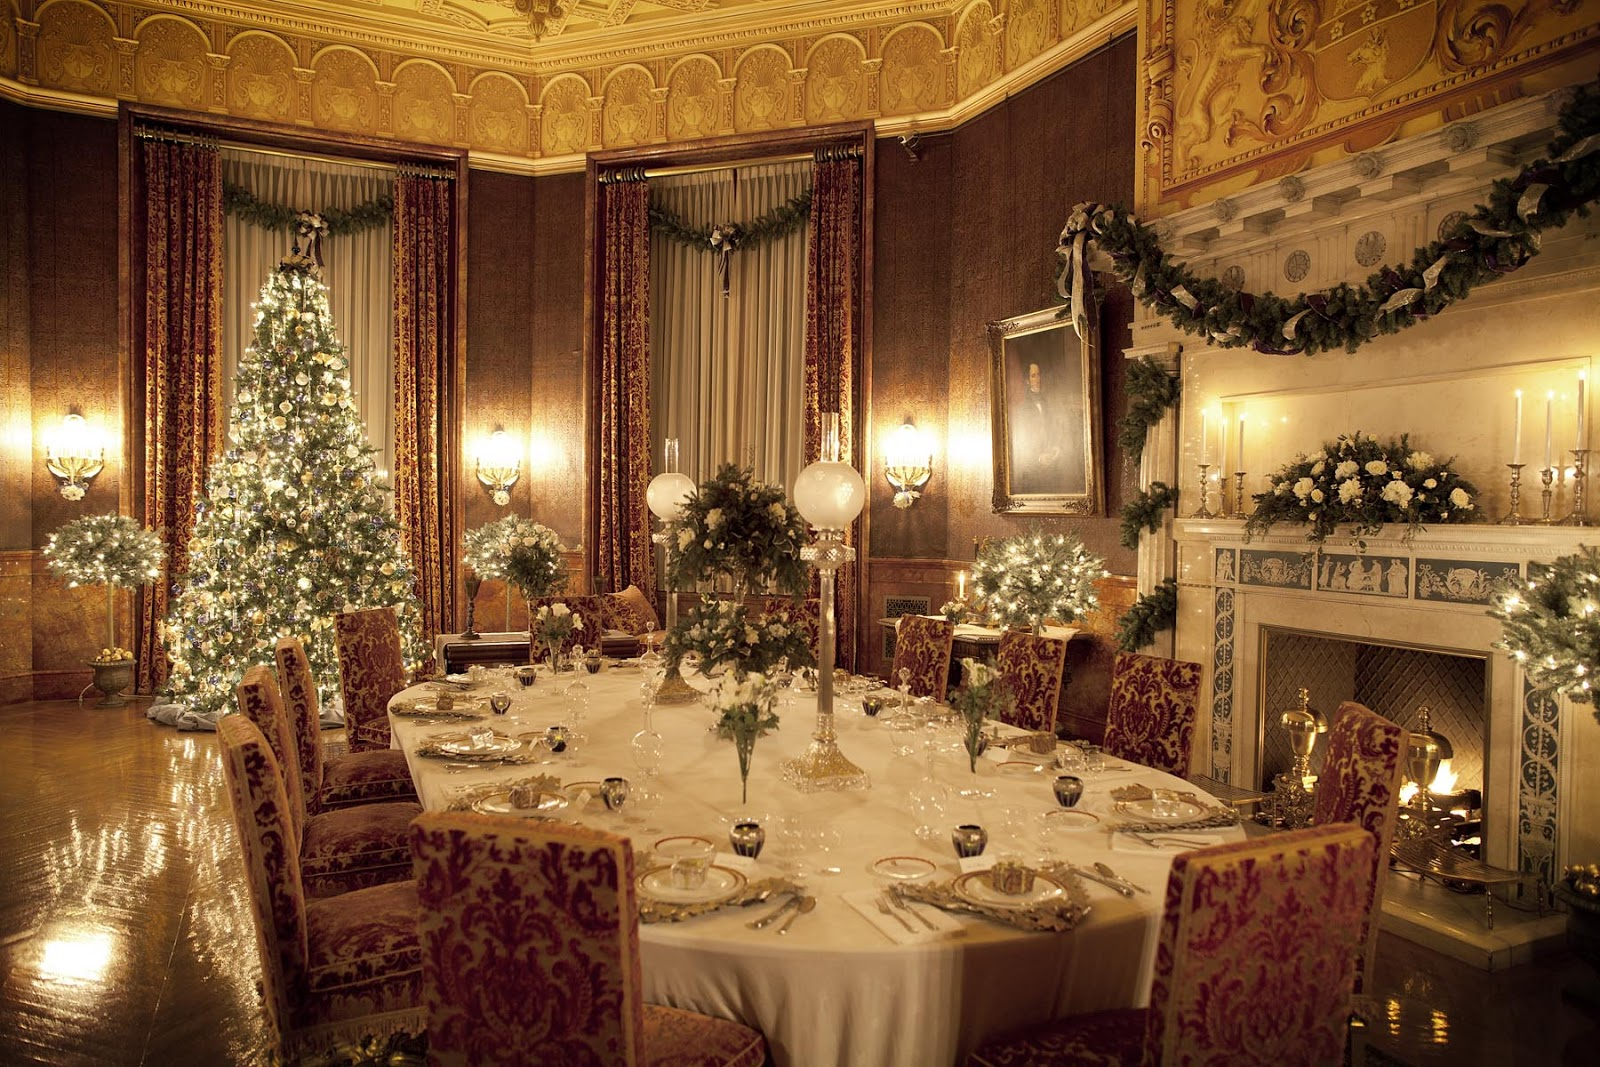 Hines sight blog decorating tips from the biltmore estate for Inside of houses decorated for christmas